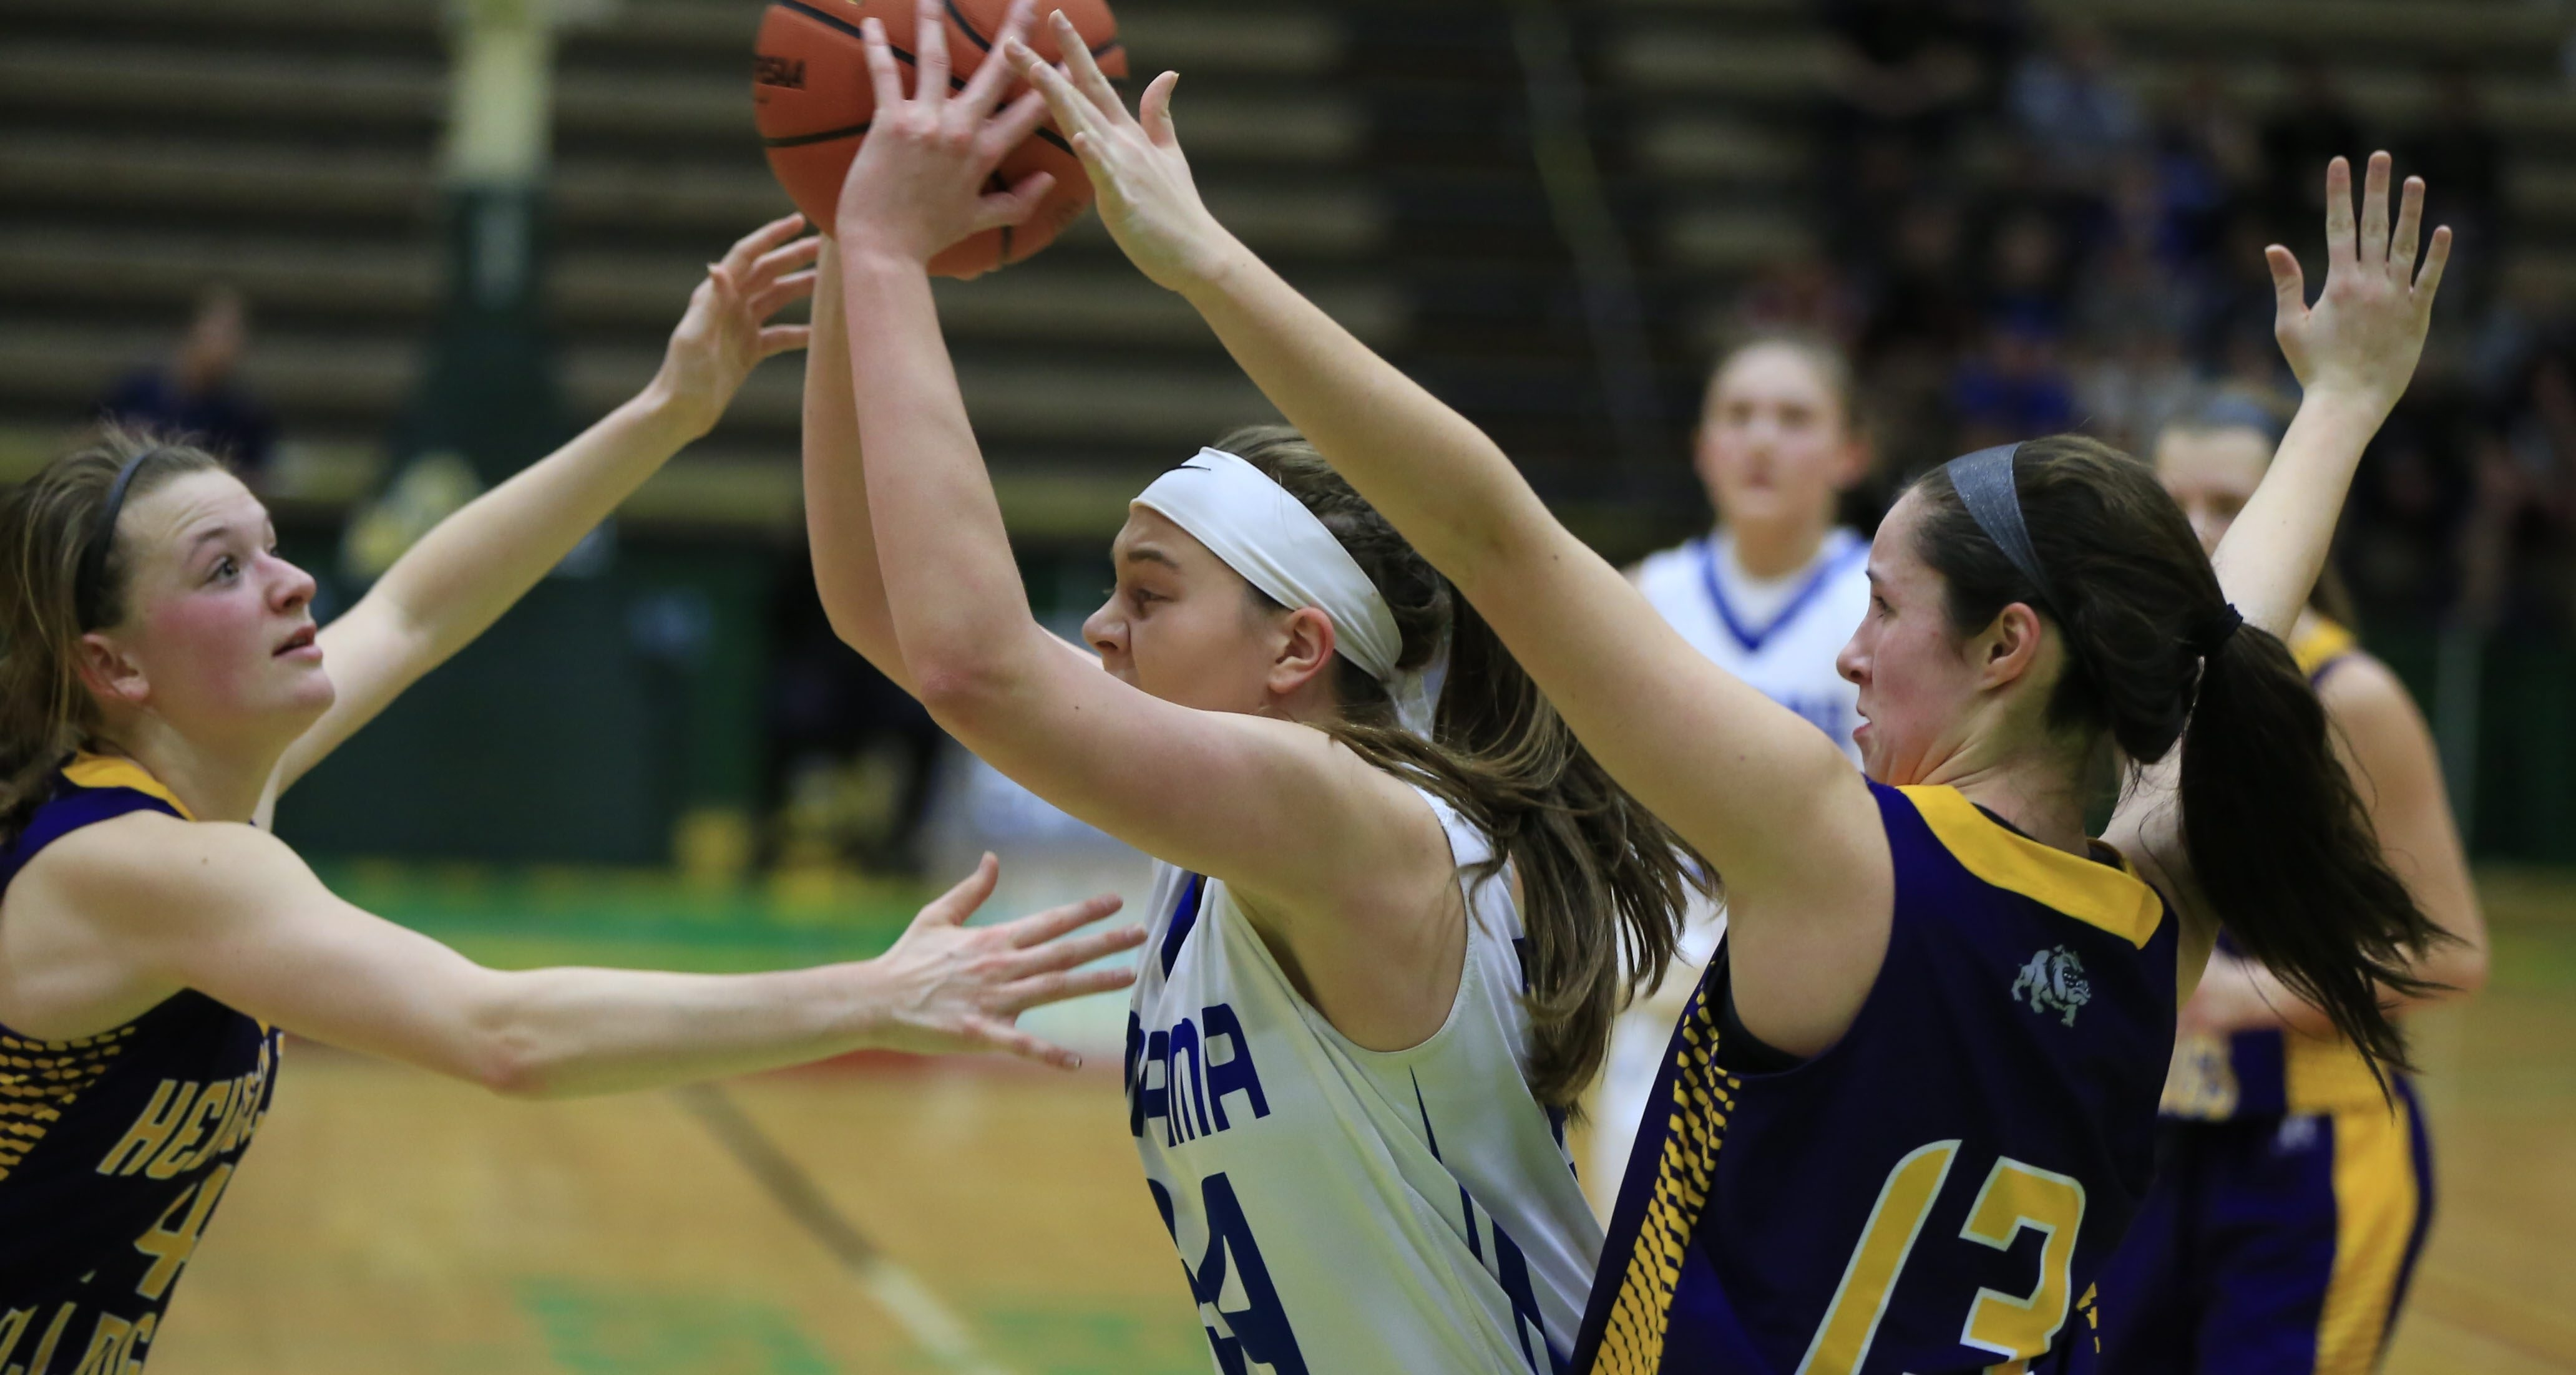 Panama's Nicole Johnson looks to pass against swarming defense by Heuvelton during second-half action of Sunday's Class D final.